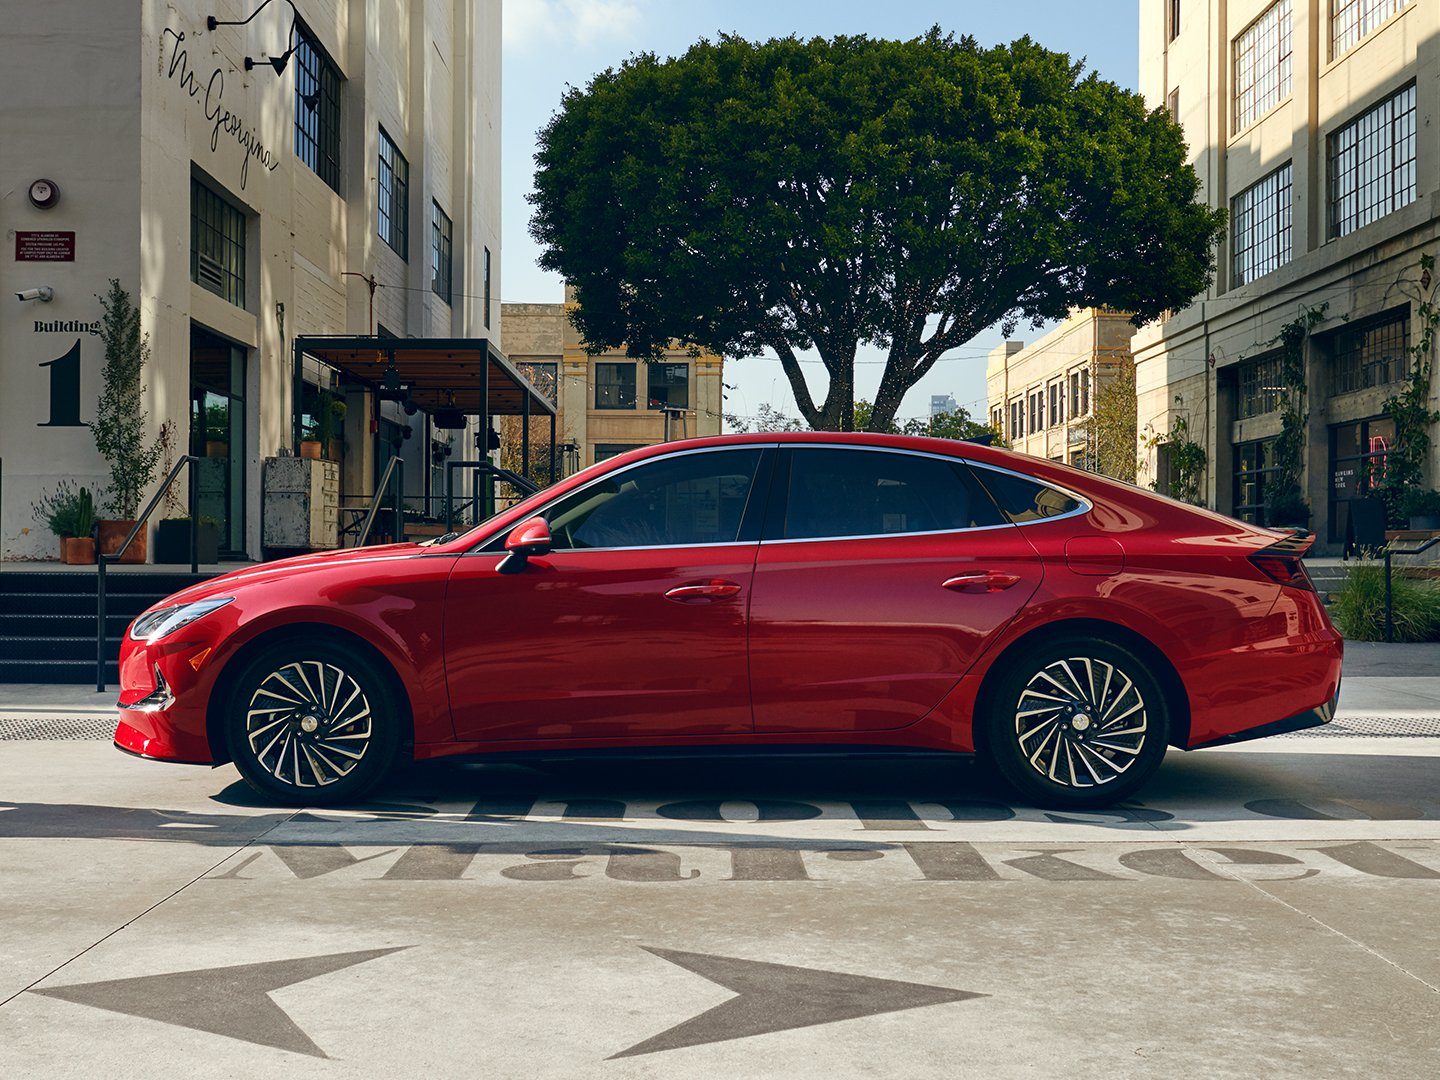 2020 Sonata Hybrid in red